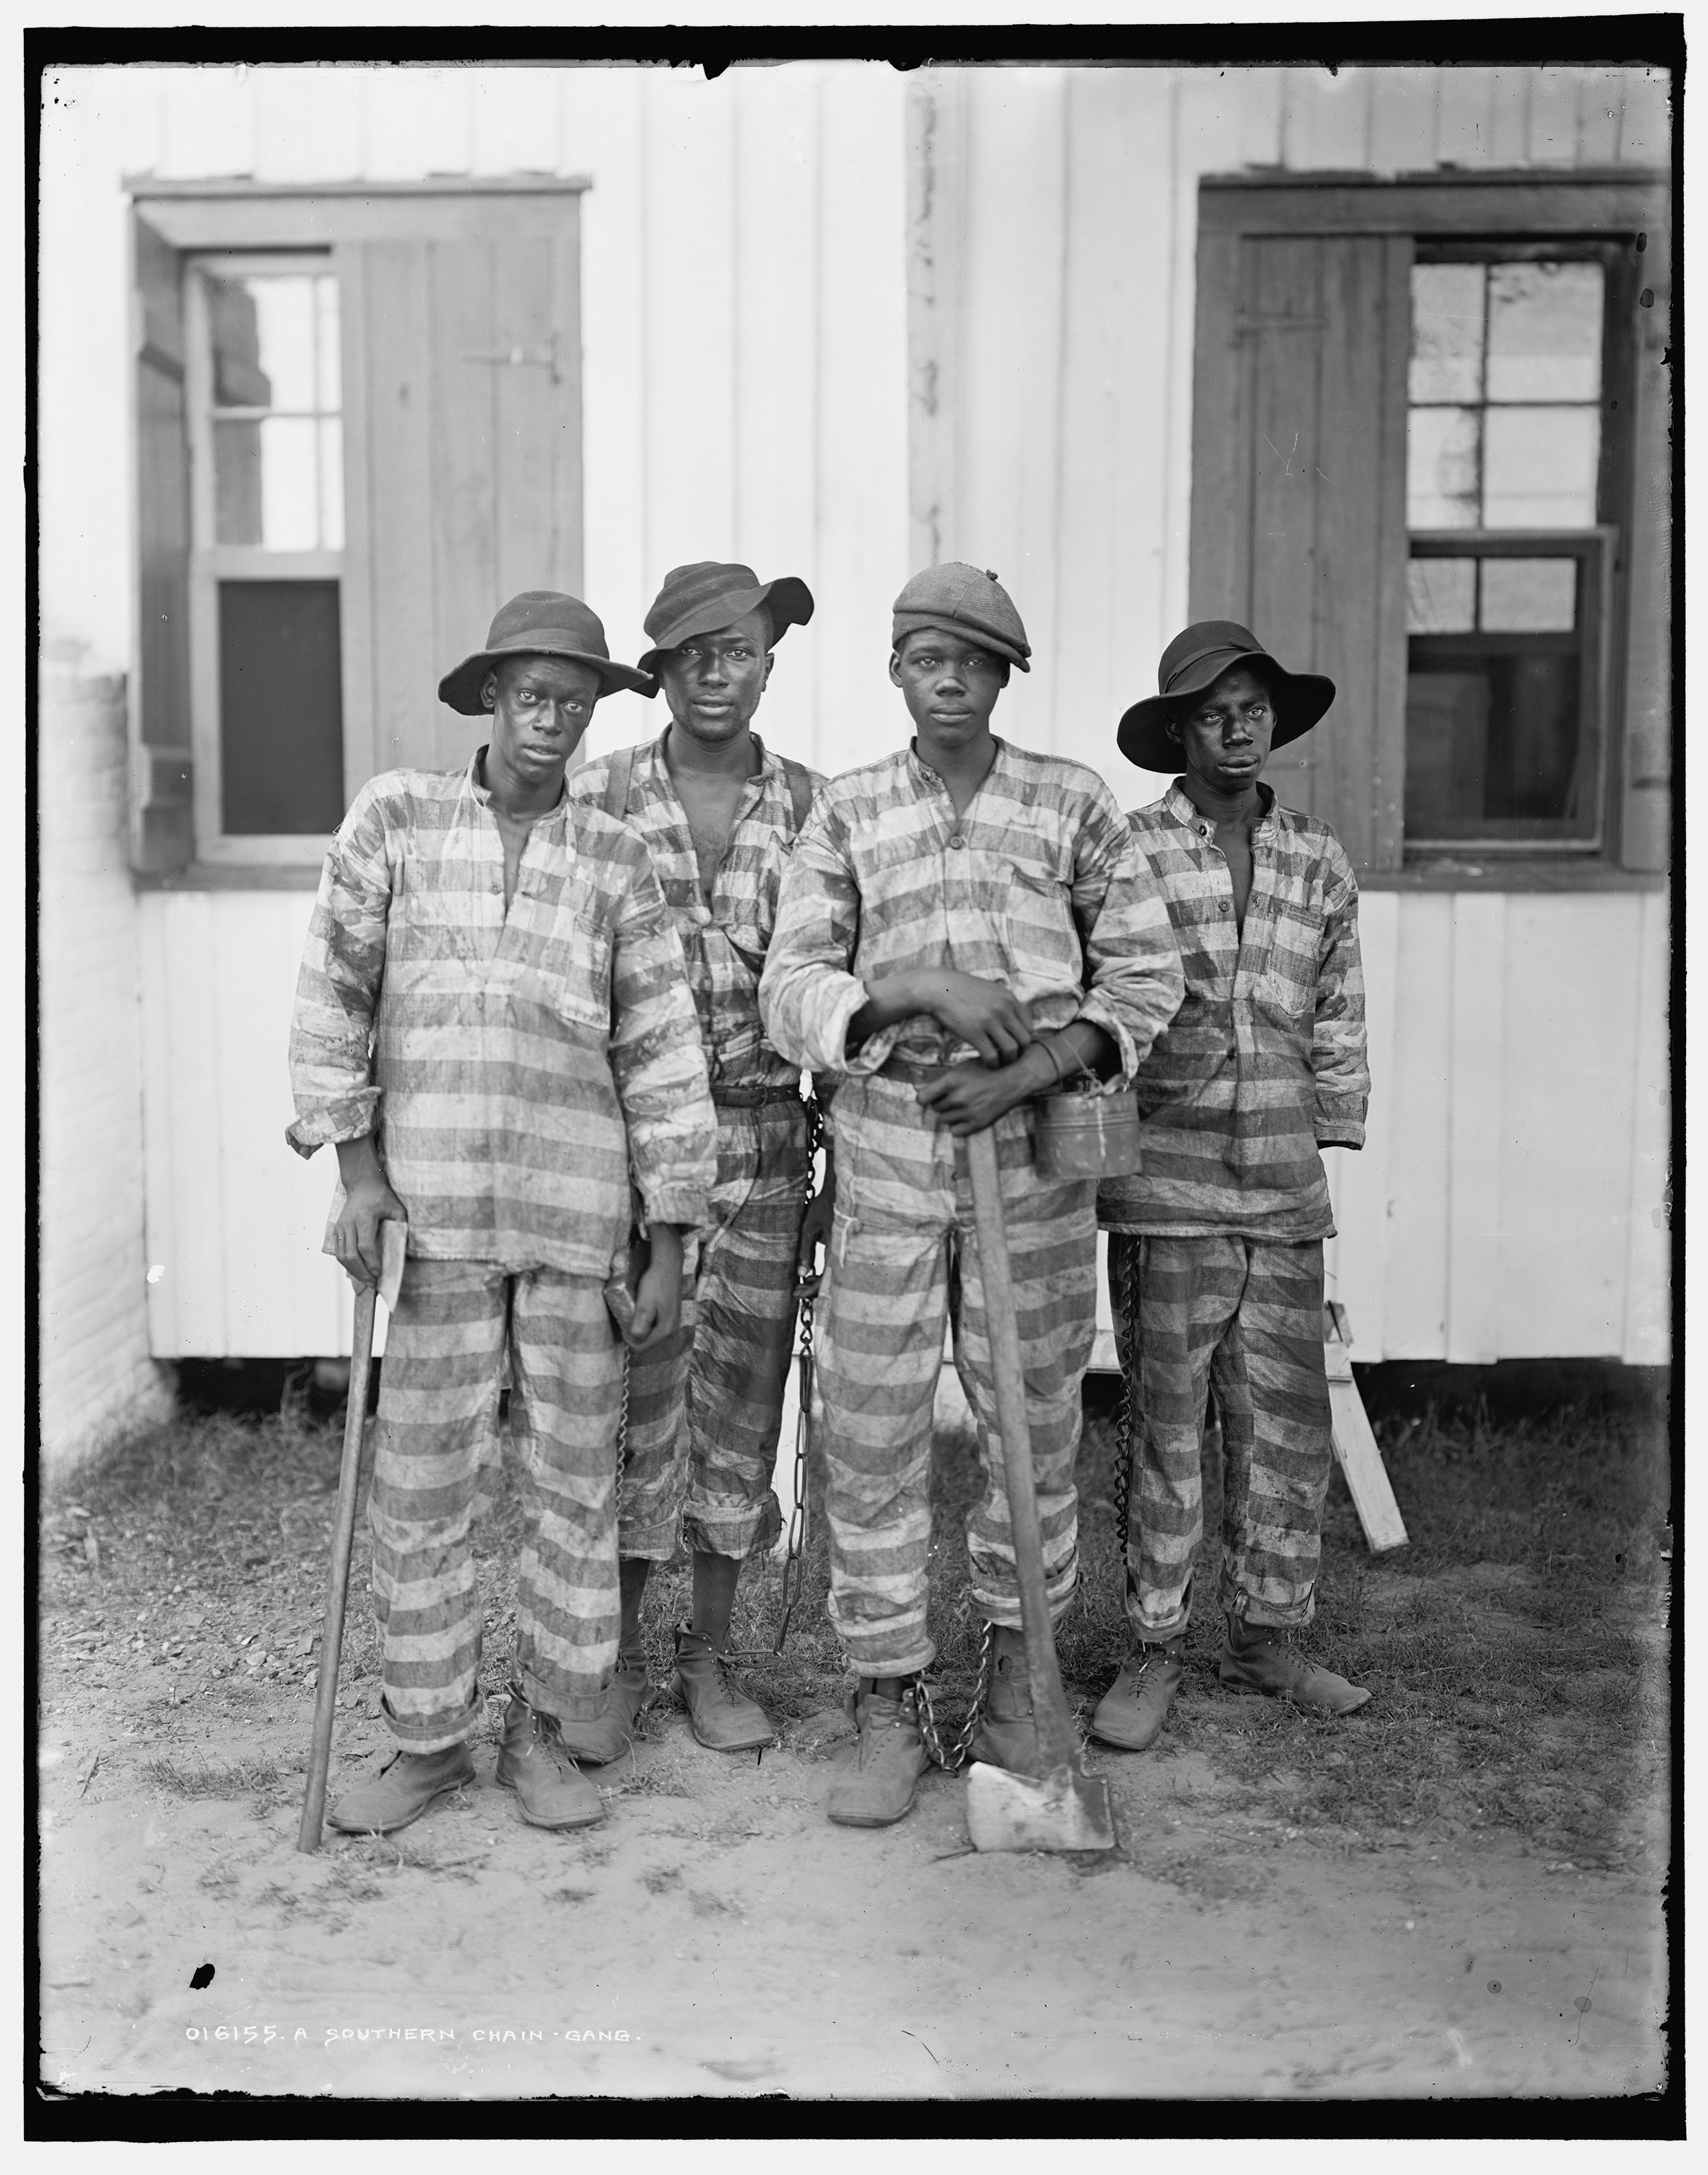 A Southern chain gang. (Detroit Publishing Company photograph collection, Library of Congress)